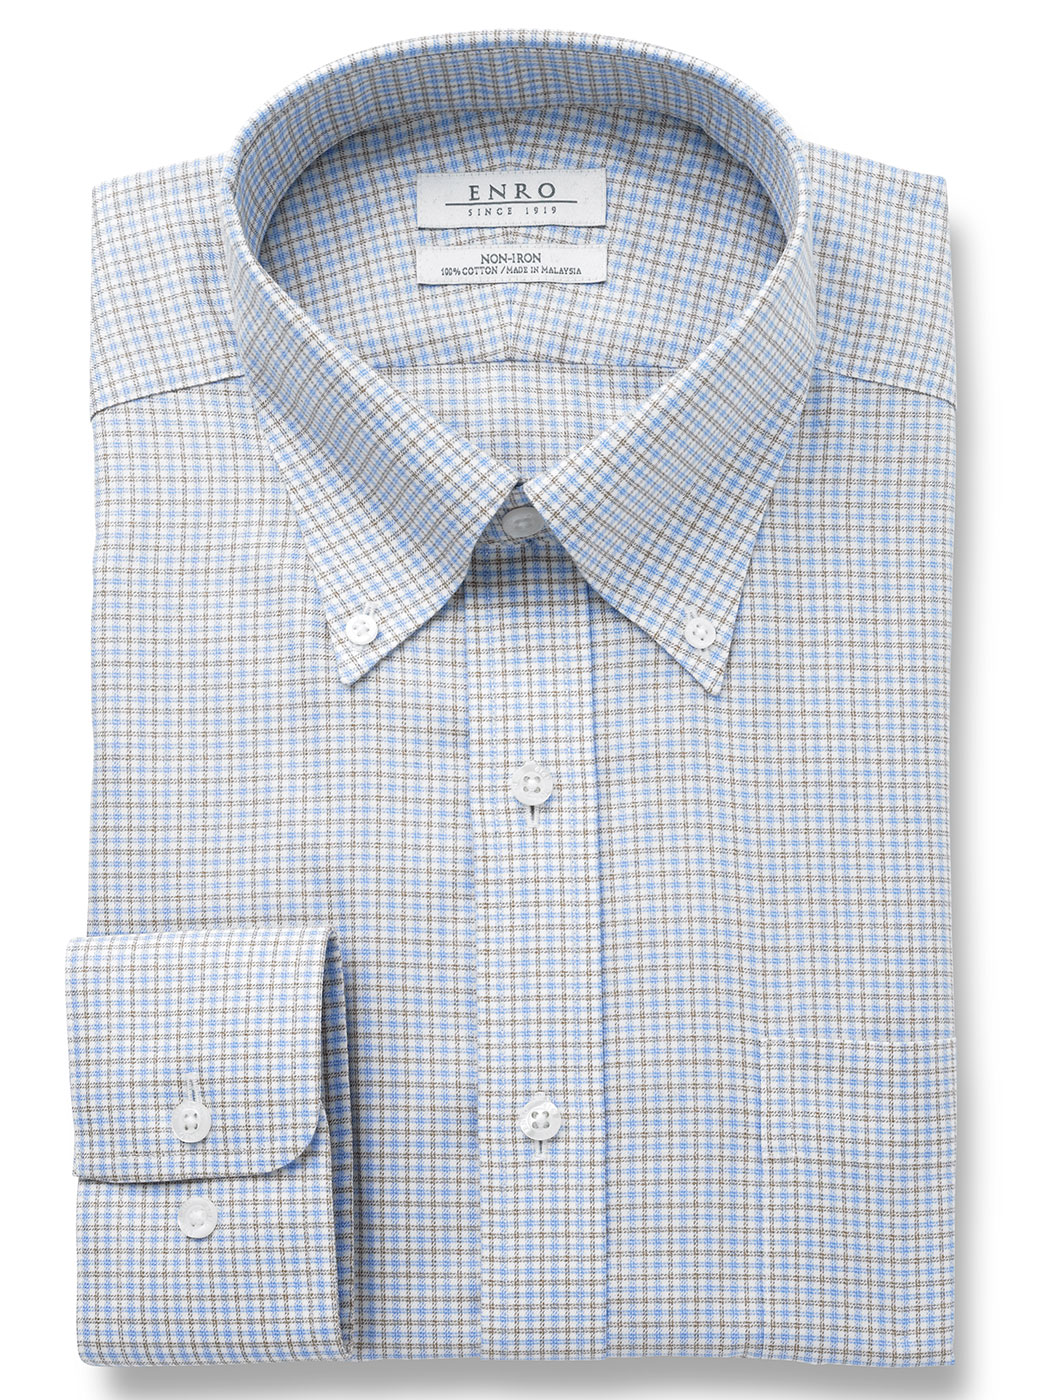 Enro Pattern Button Down Ls Dress Shirt Nattys Llc